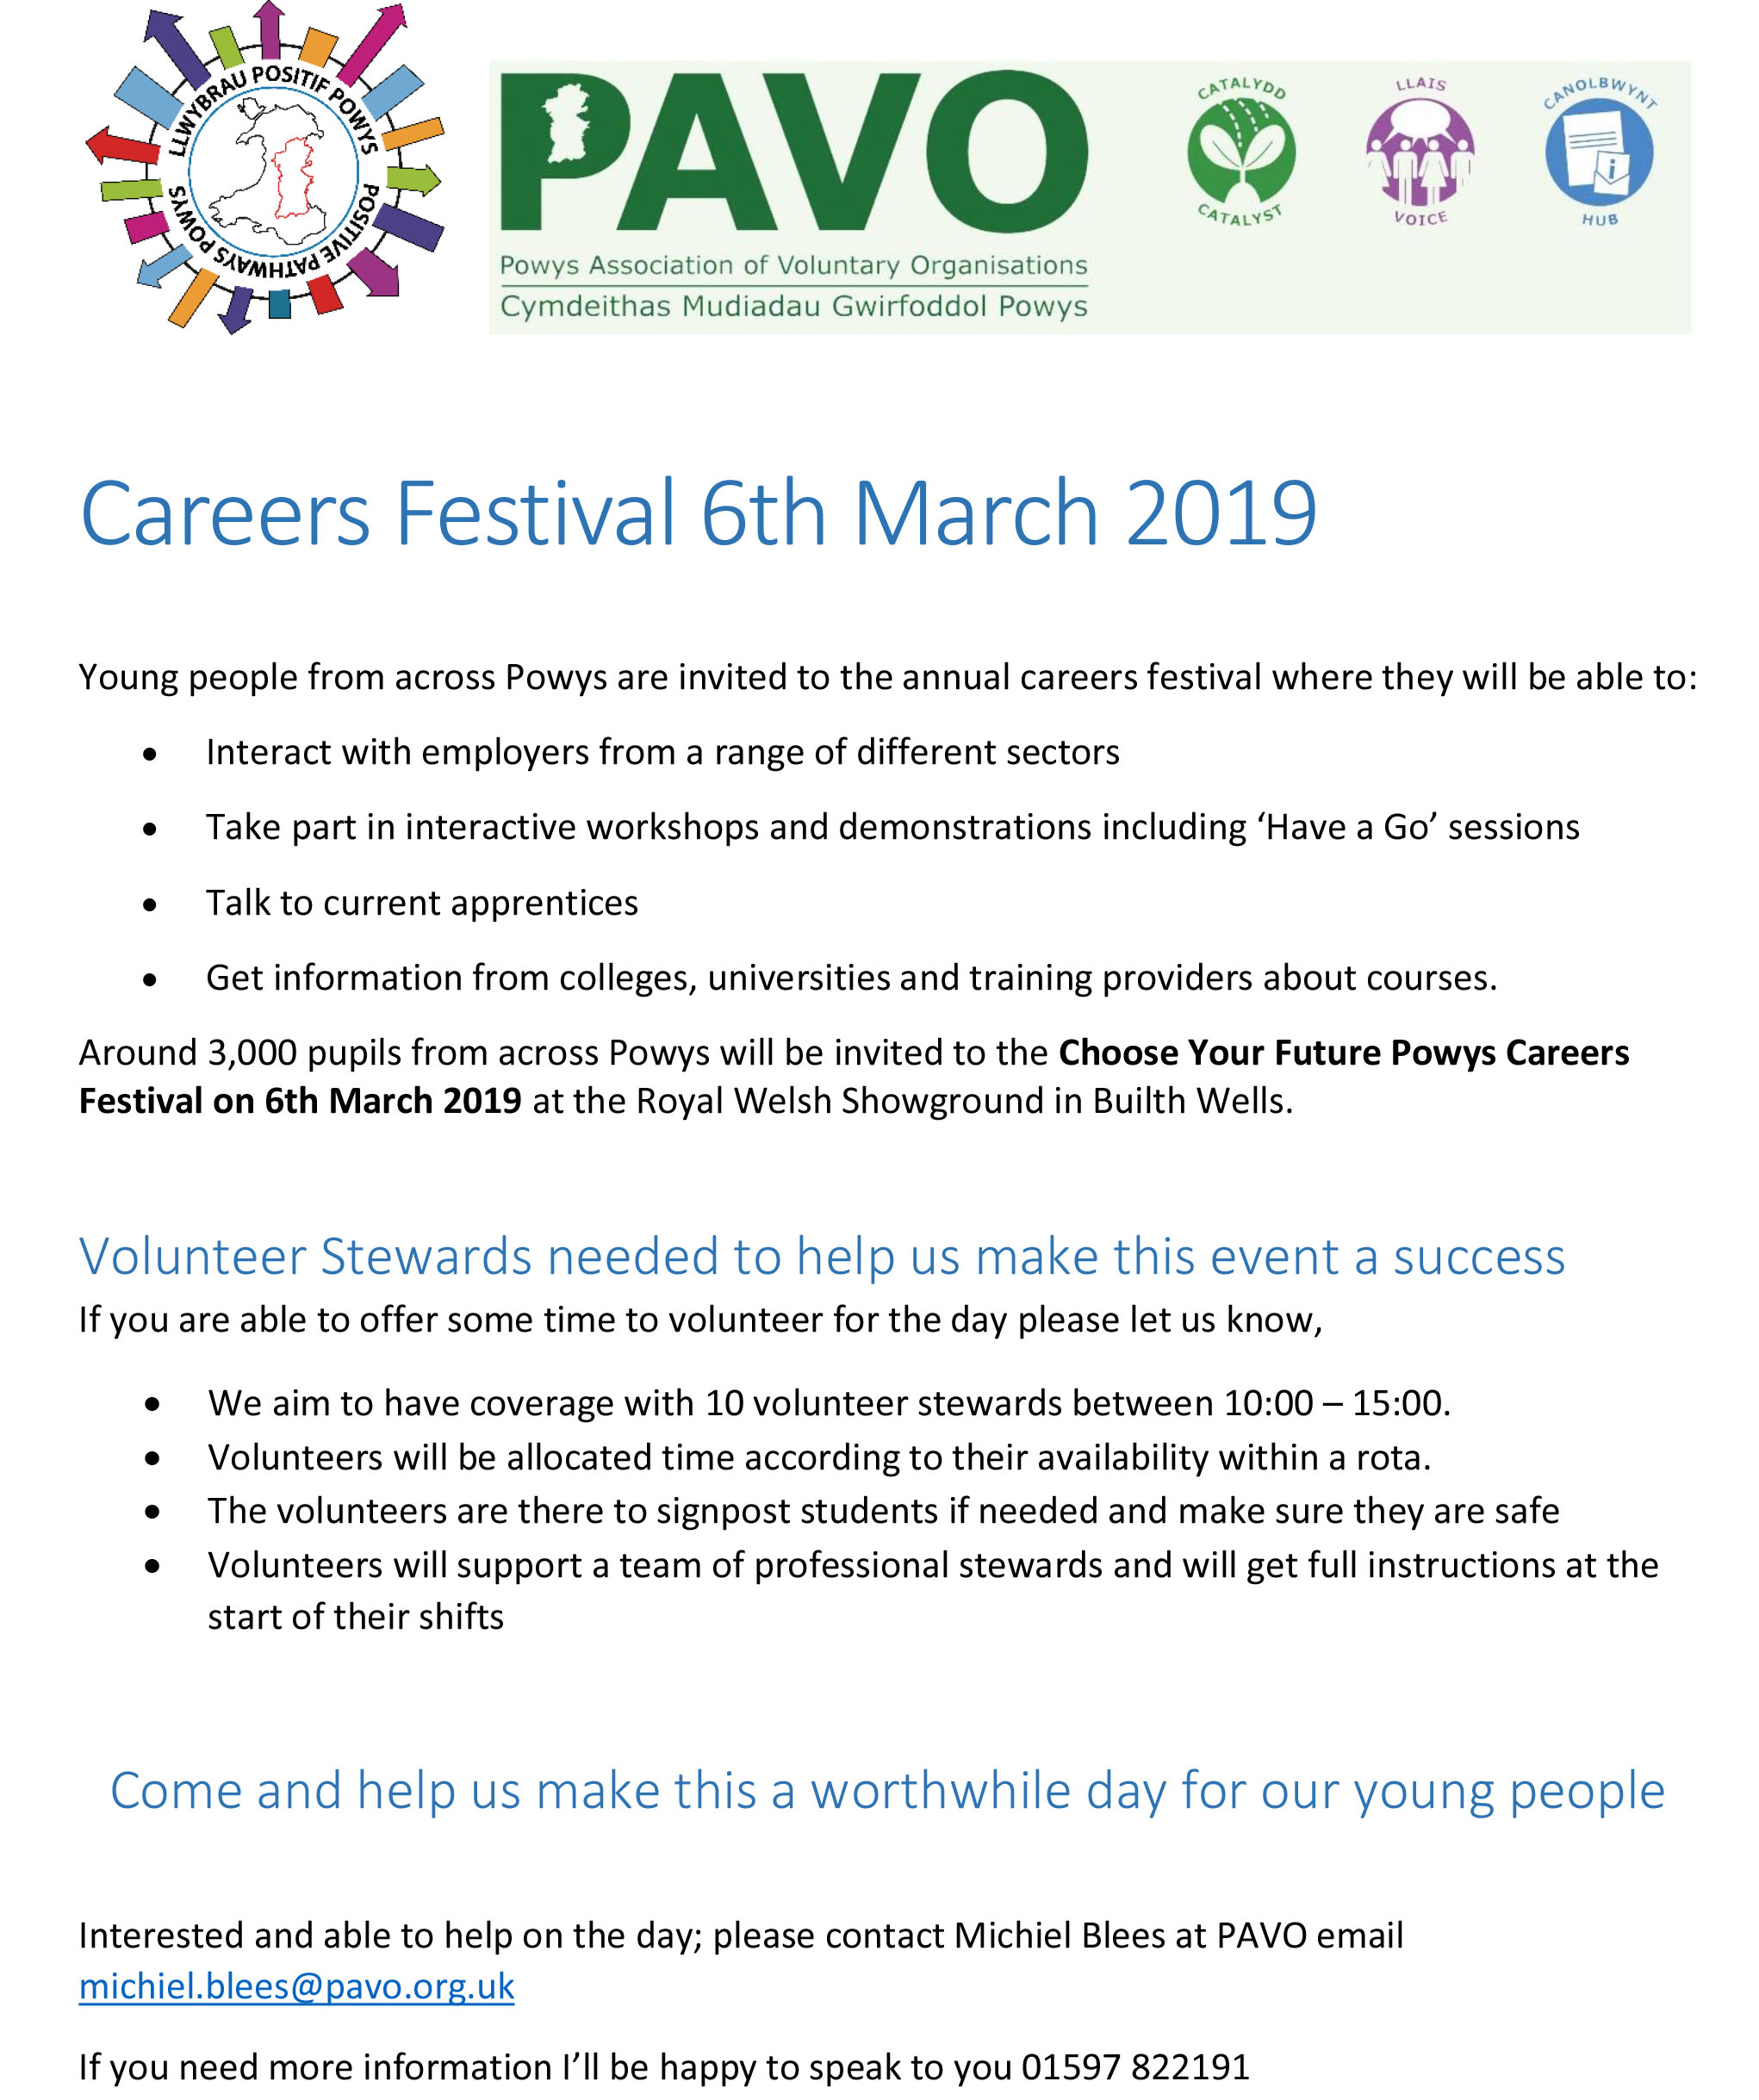 Careers Festival 6th March 2019.jpg